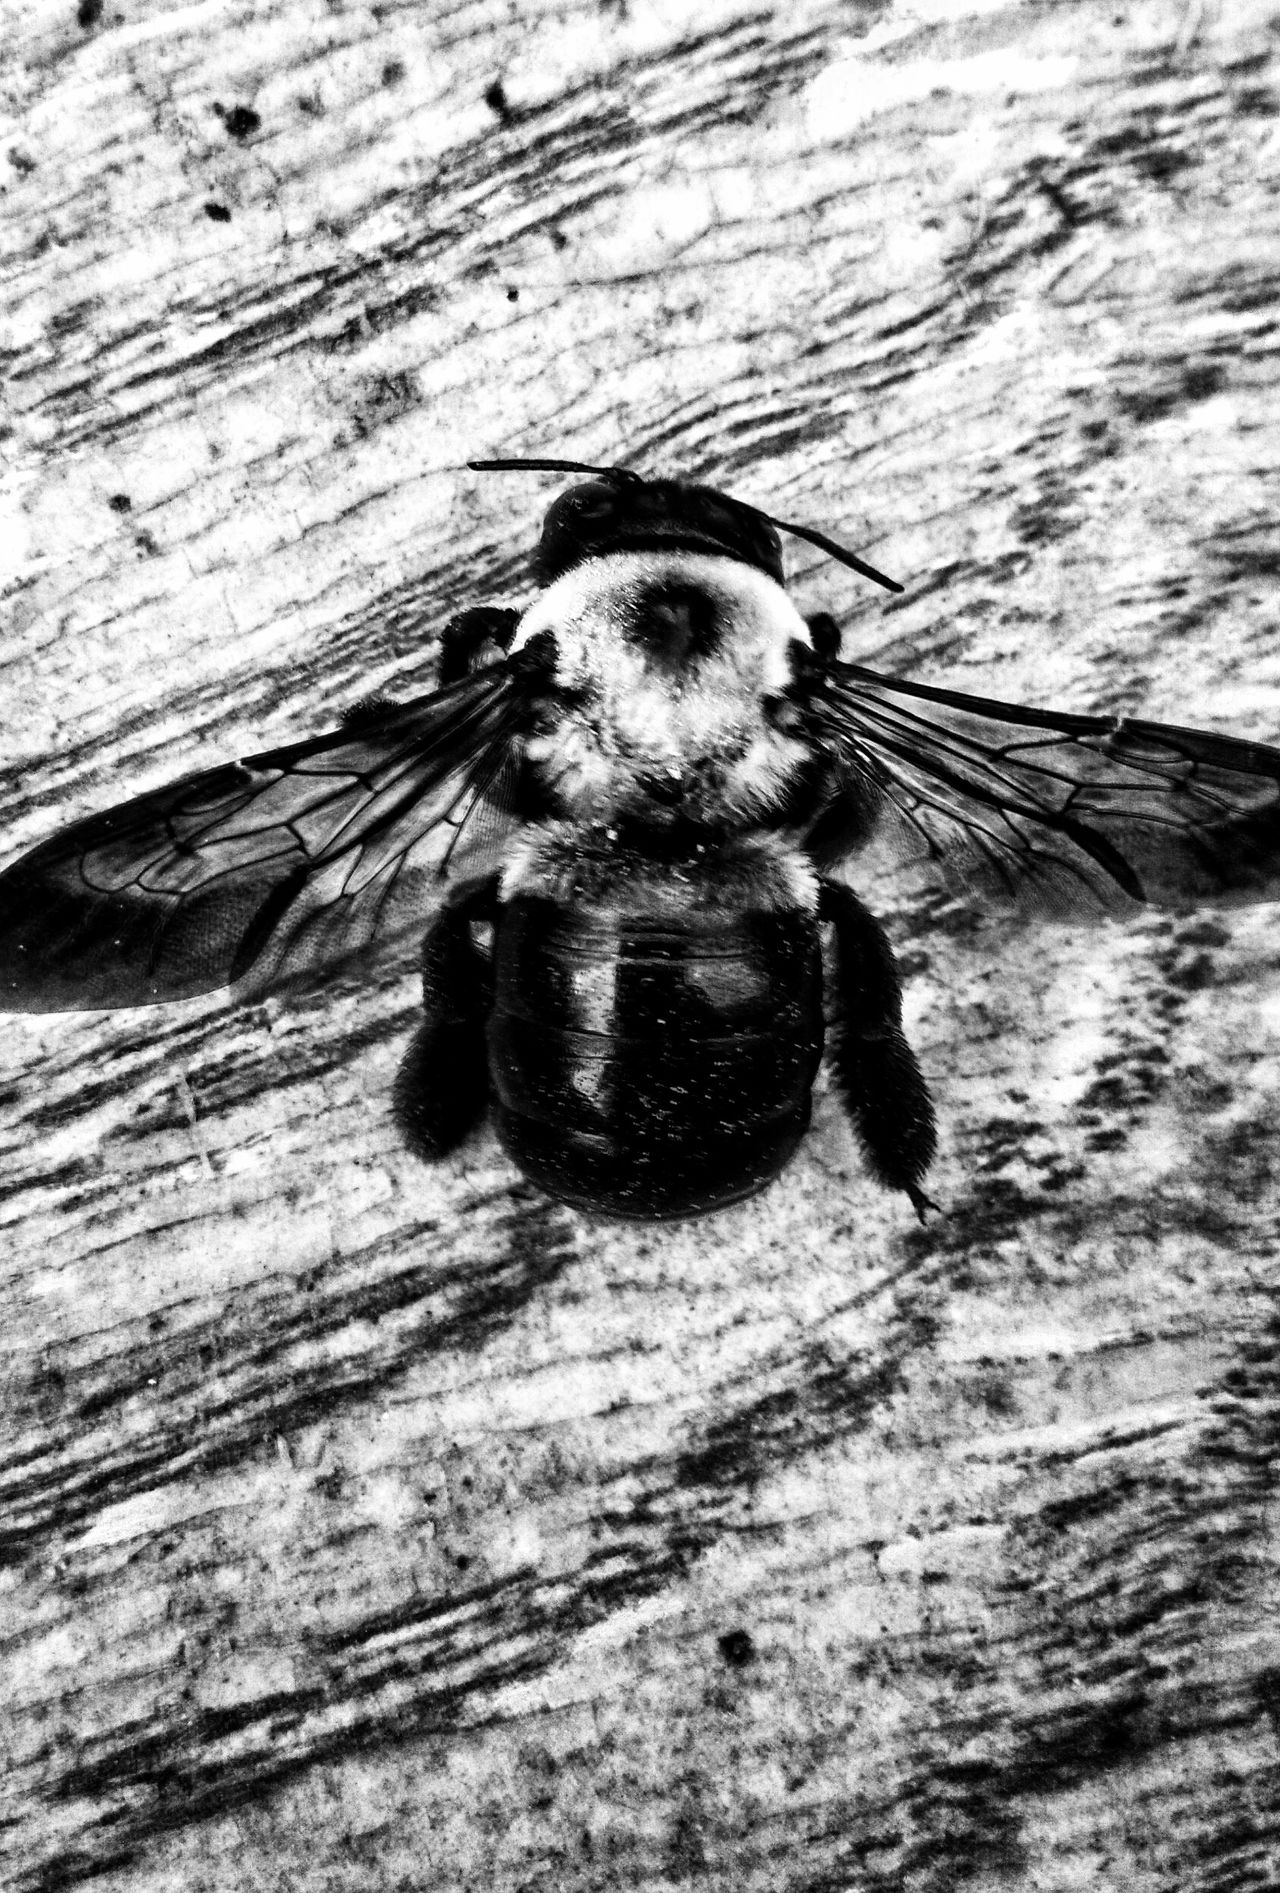 EyeEm Nature Lover Insect Bee Black And White